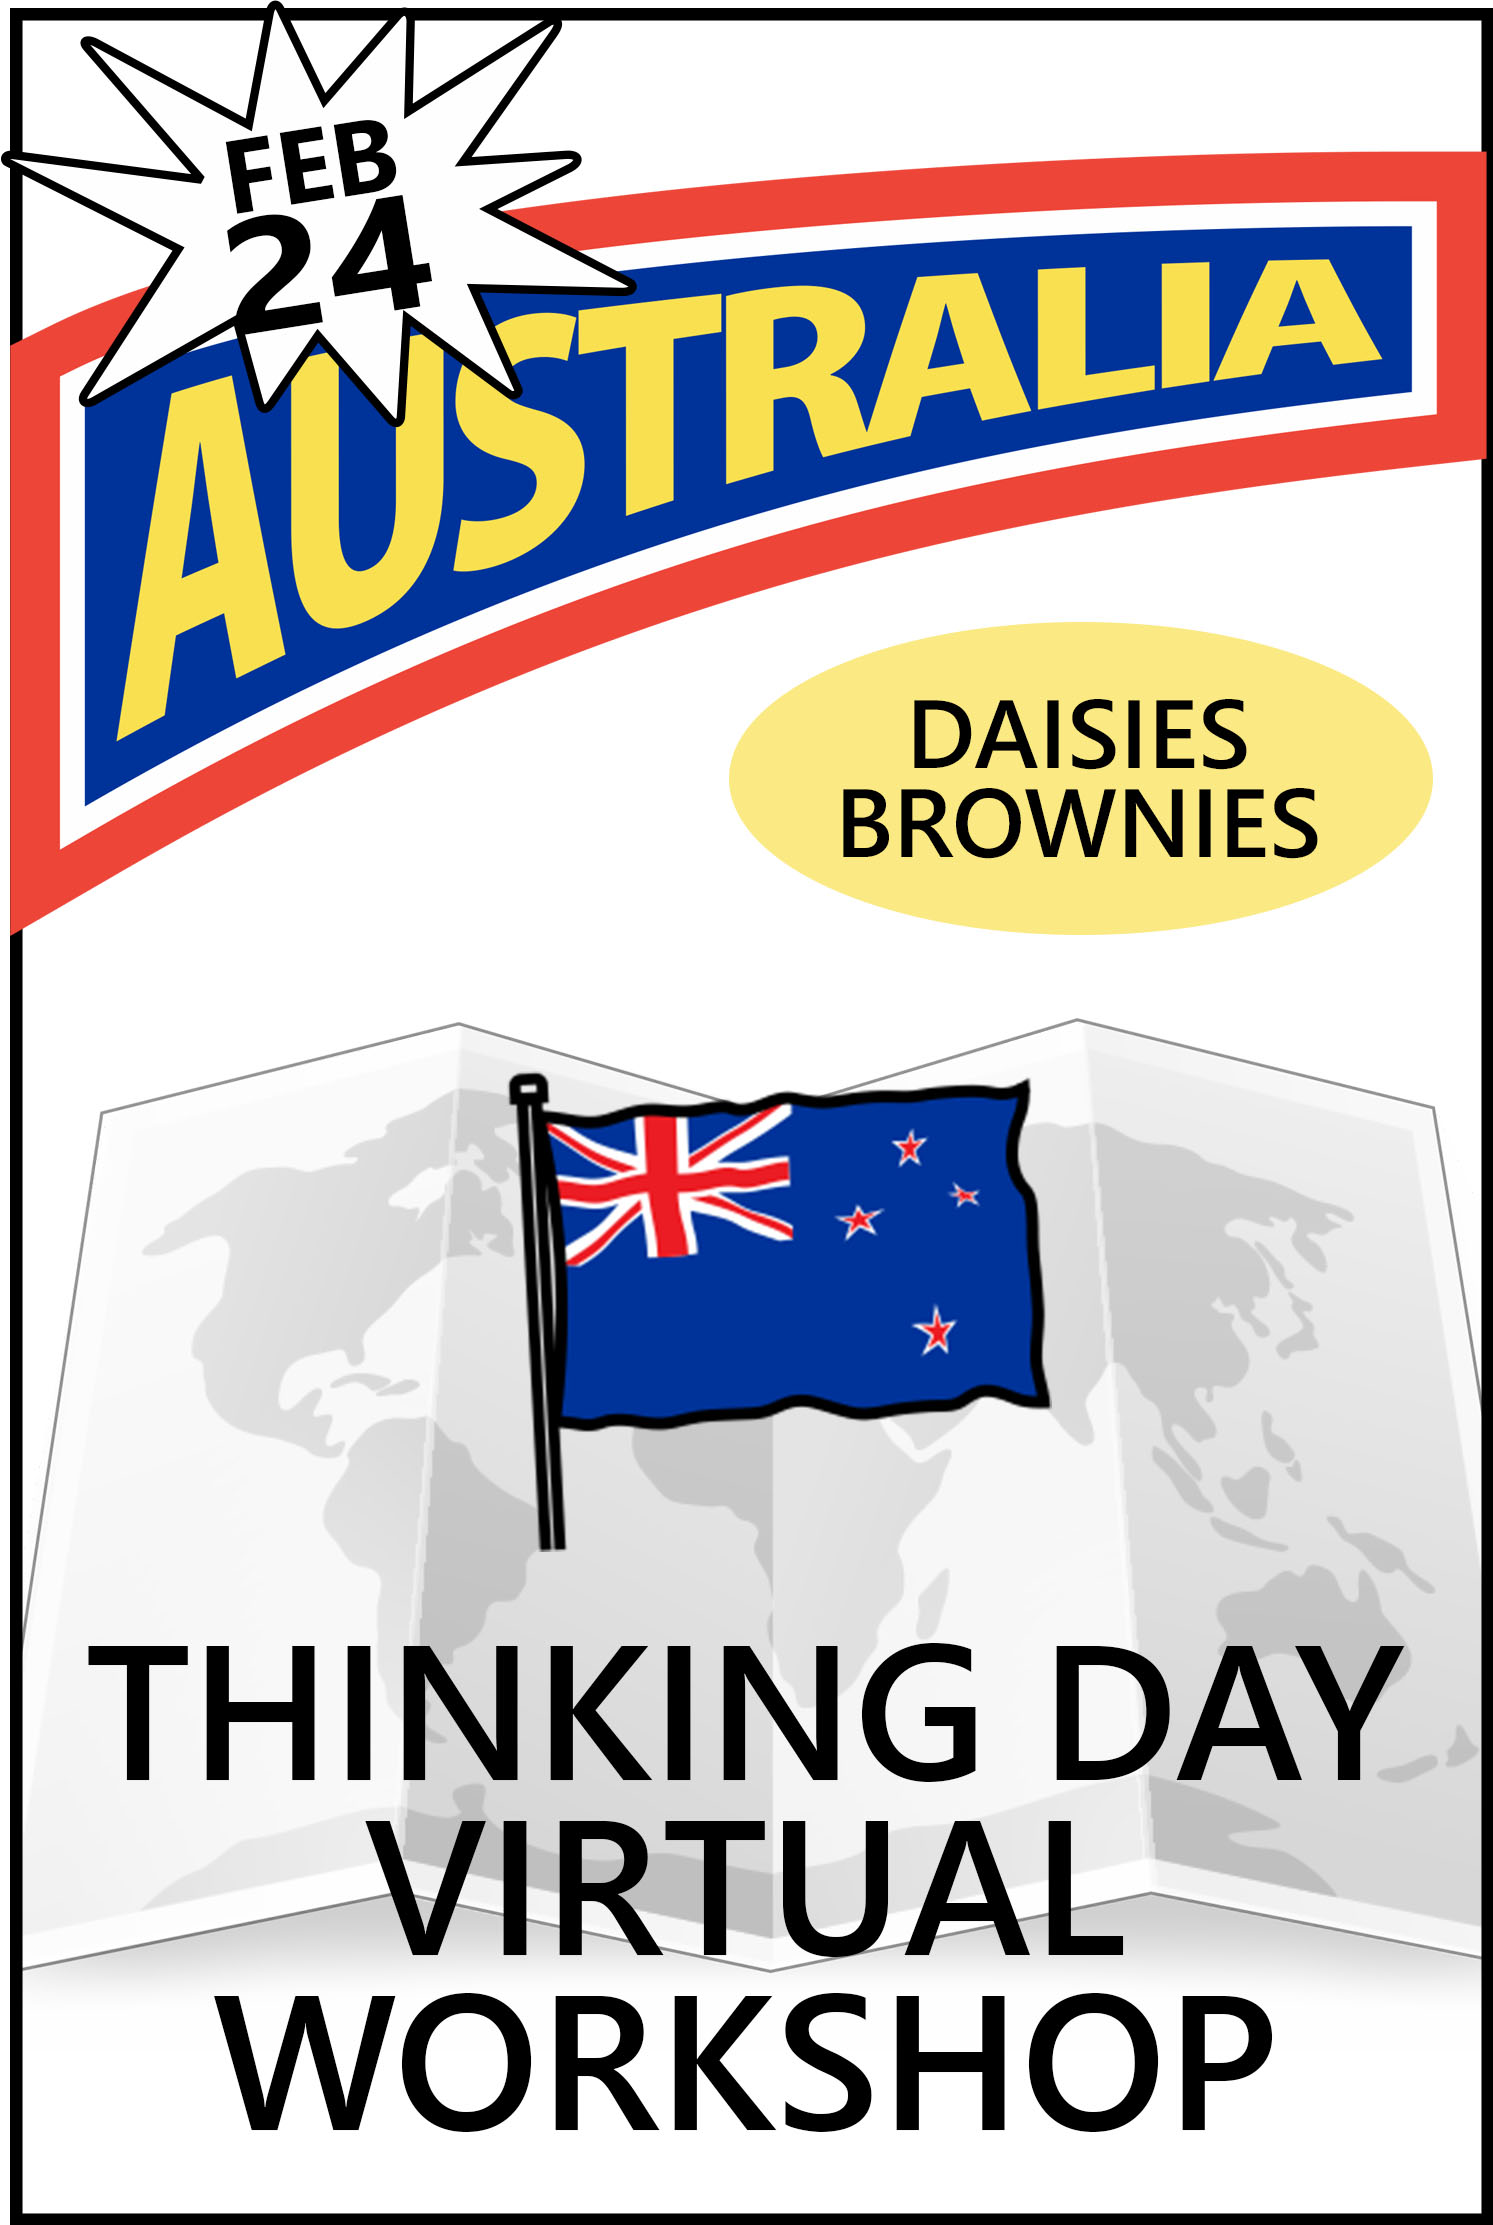 Explore Australian traditions, food, clothing, customs, and more! The price includes the workshop and supplies! #makingfriends #thinkingday #australia #virtualworkshop #thinkingdayaustralia #virtual #onlineclass #gsthinkingday #girlscouts #gstradition via @gsleader411